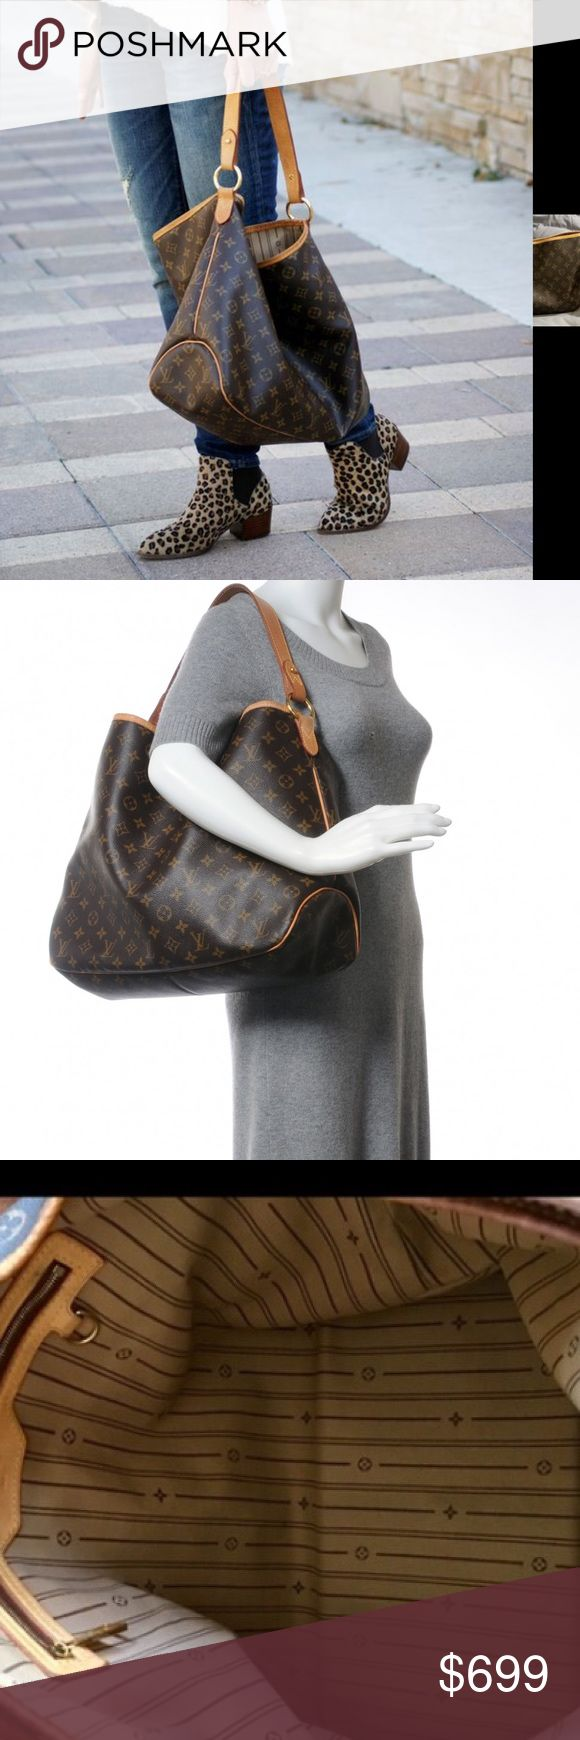 """100% Authentic Louis Vuitton delightful mm authentic LOUIS VUITTON Monogram Delightful MM with RECEIPT.mThis stylish shoulder bag is finely crafted of classic Louis Vuitton monogram on toile canvas in the medium size. The bag features a looping vachetta cowhide leather shoulder strap, trim, and polished brass hardware. The top is open to a striped fabric interior with a zipper pocket. This is a marvelous shoulder bag that is ideal for day, from Louis Vuitton! Length: 18"""", Height: 13"""", Depth…"""